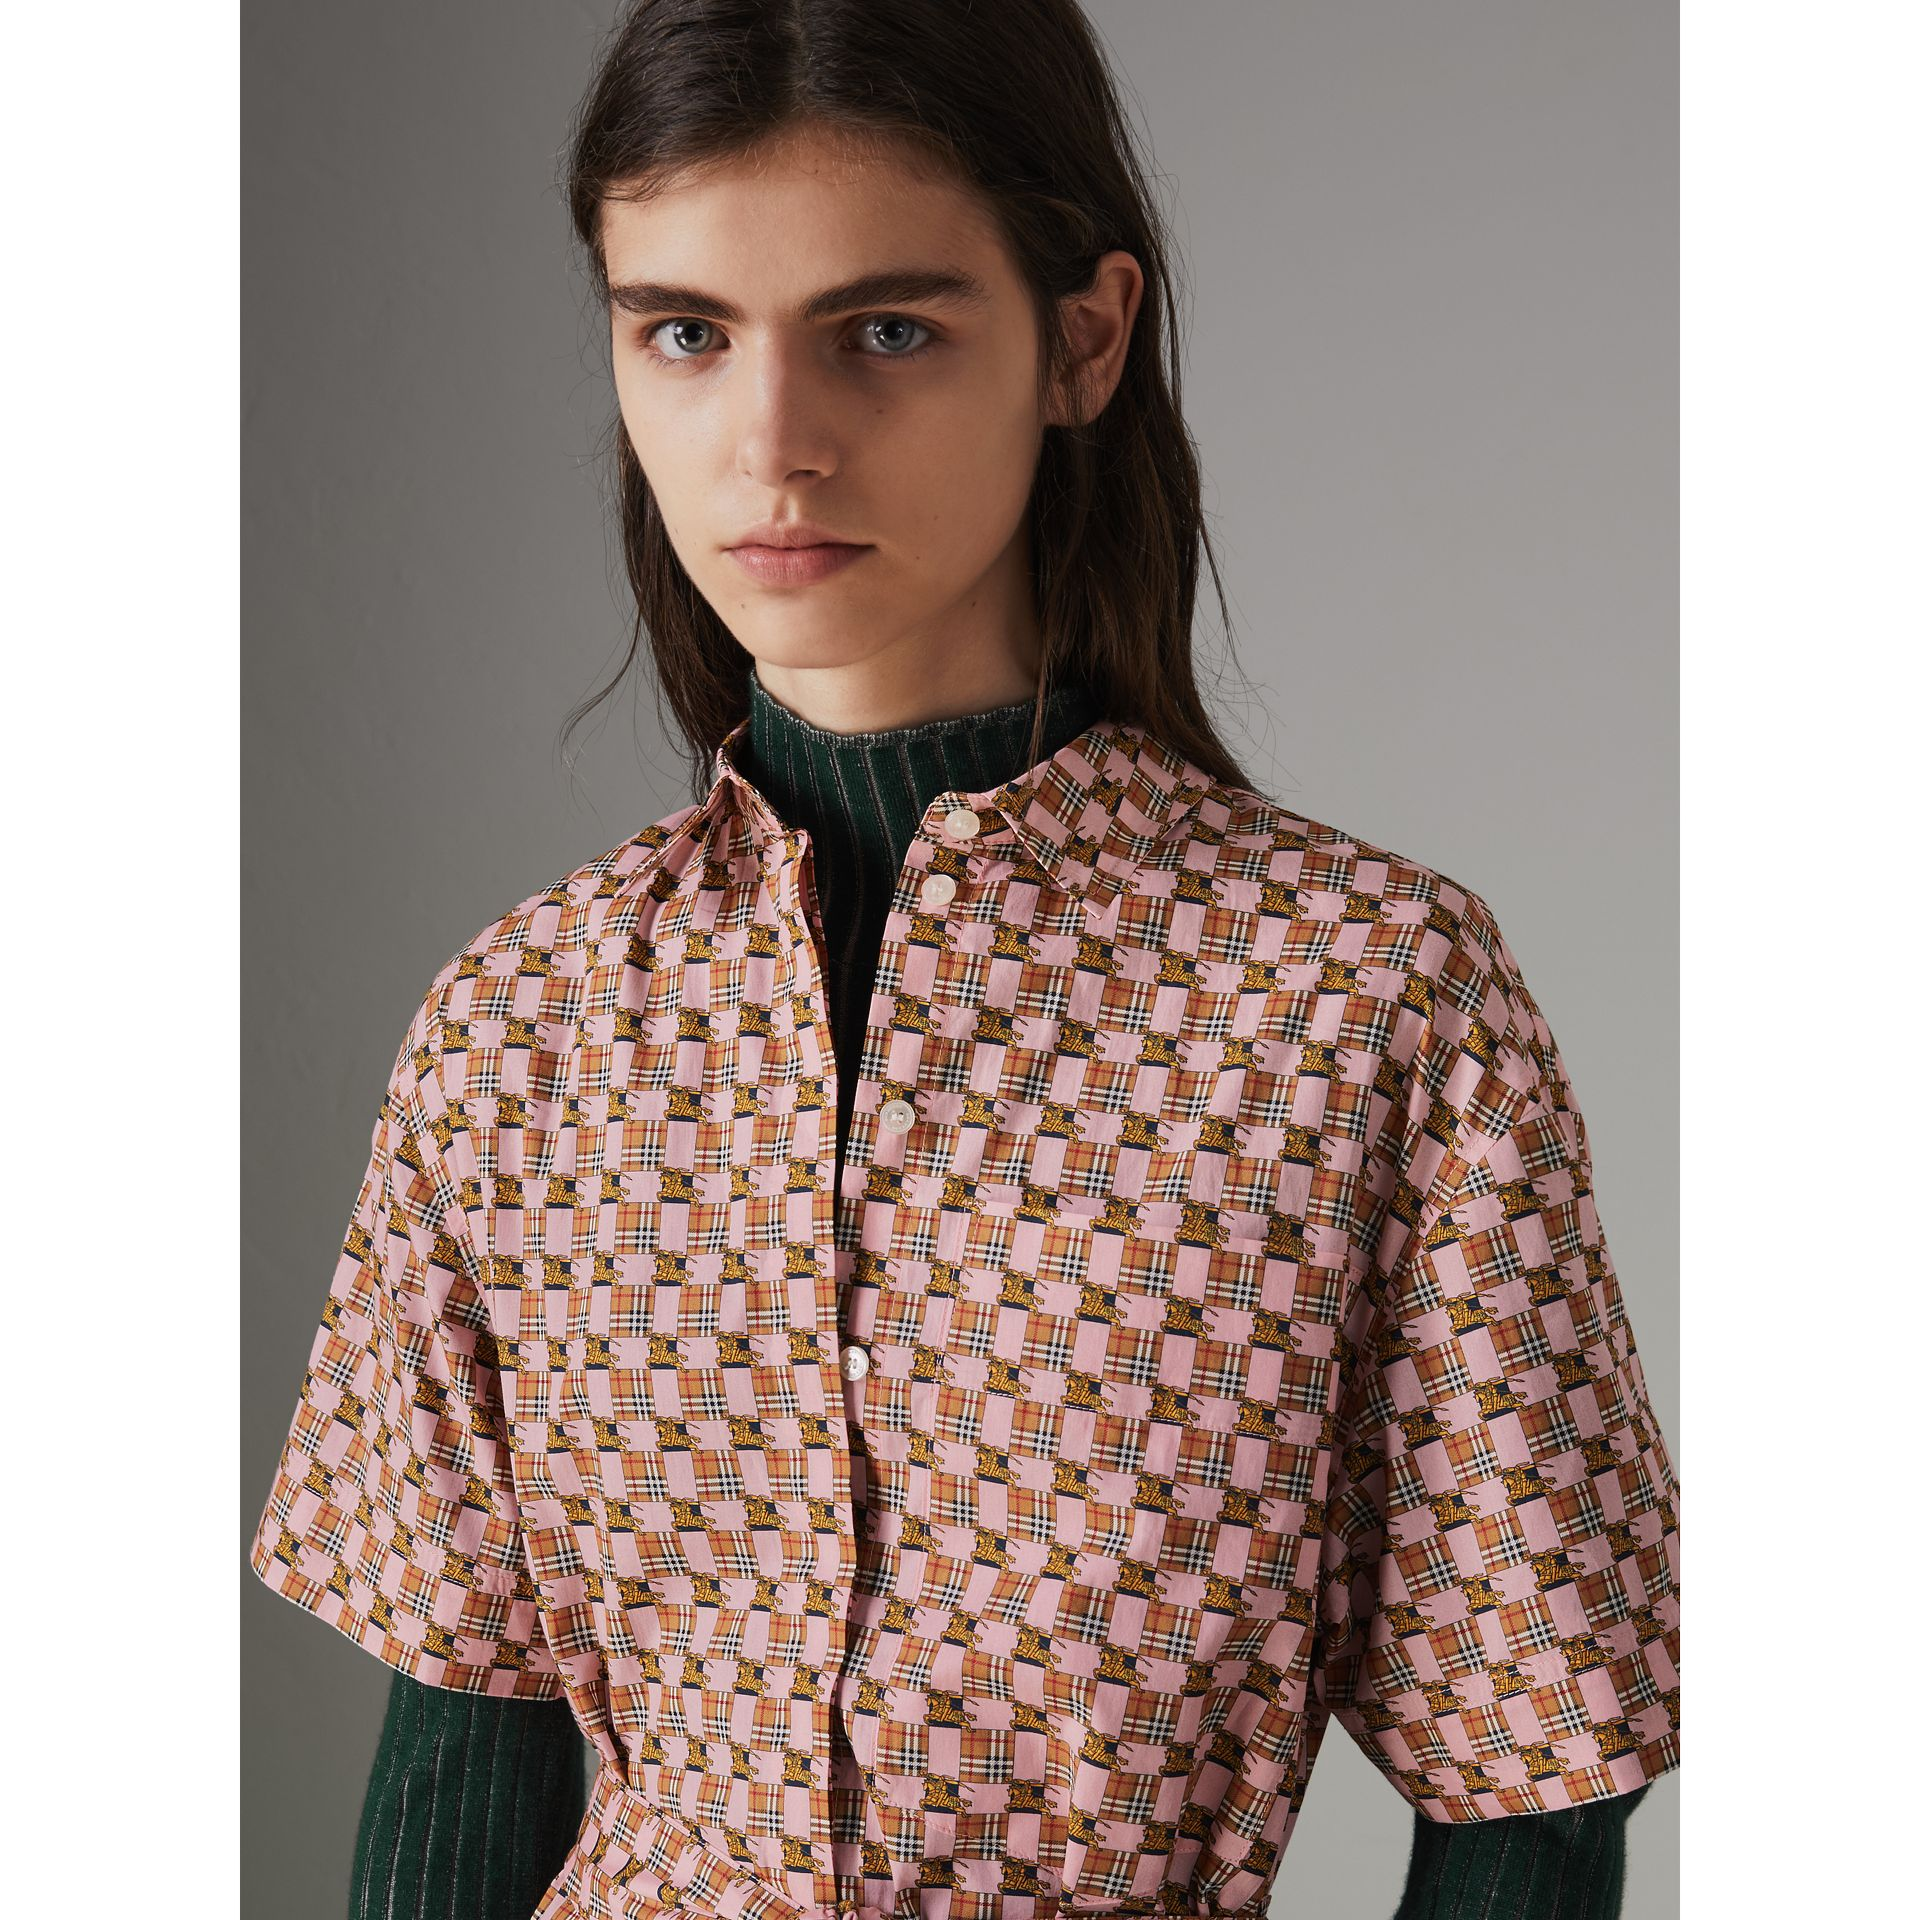 Tiled Archive Print Cotton Shirt Dress in Pink - Women | Burberry Hong Kong - gallery image 5